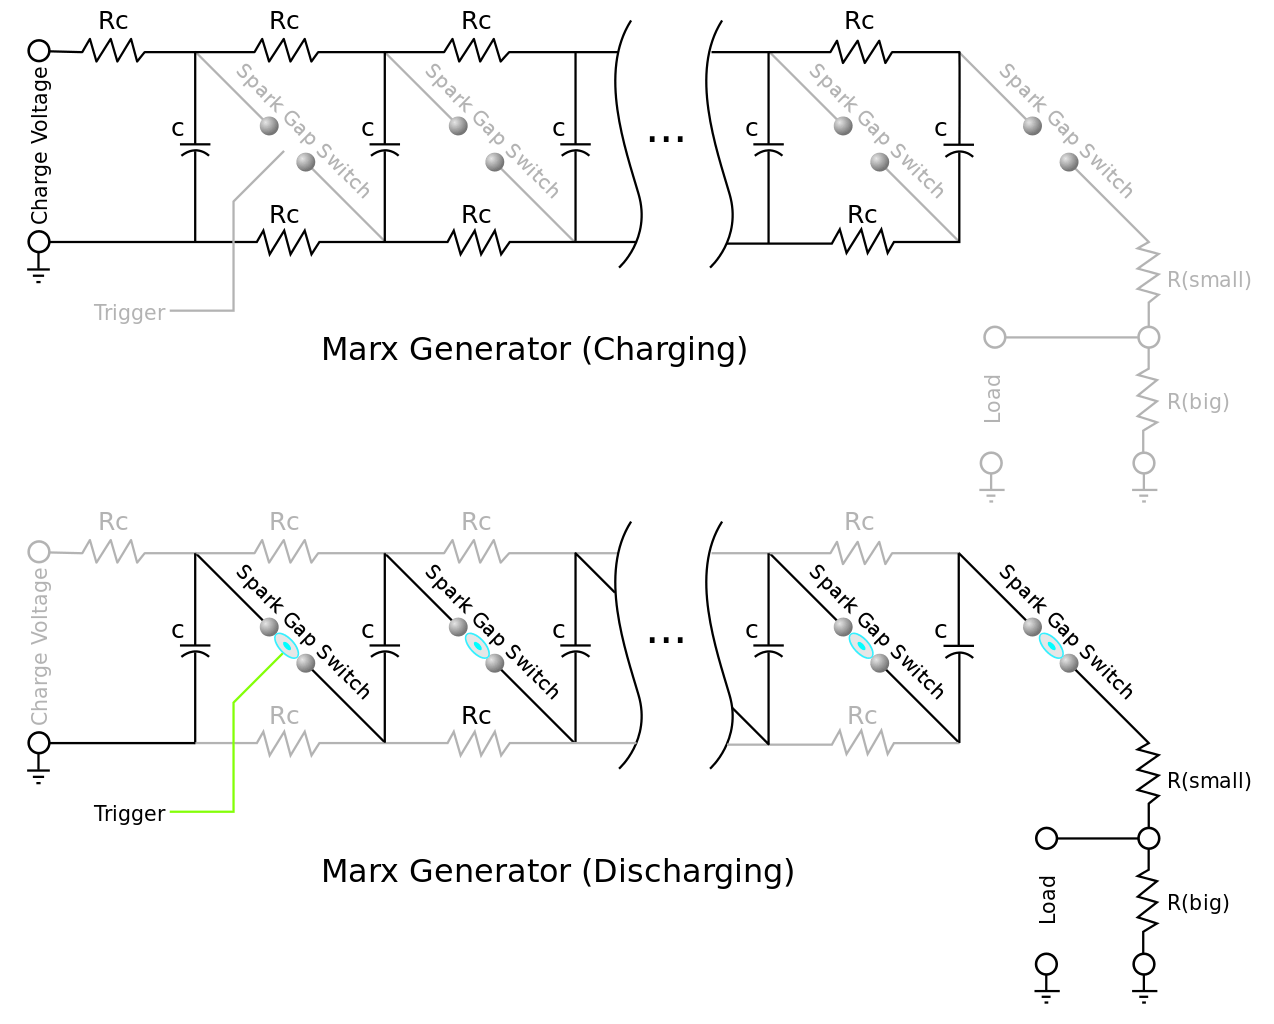 Wrg X Ray Generator Circuit Diagram